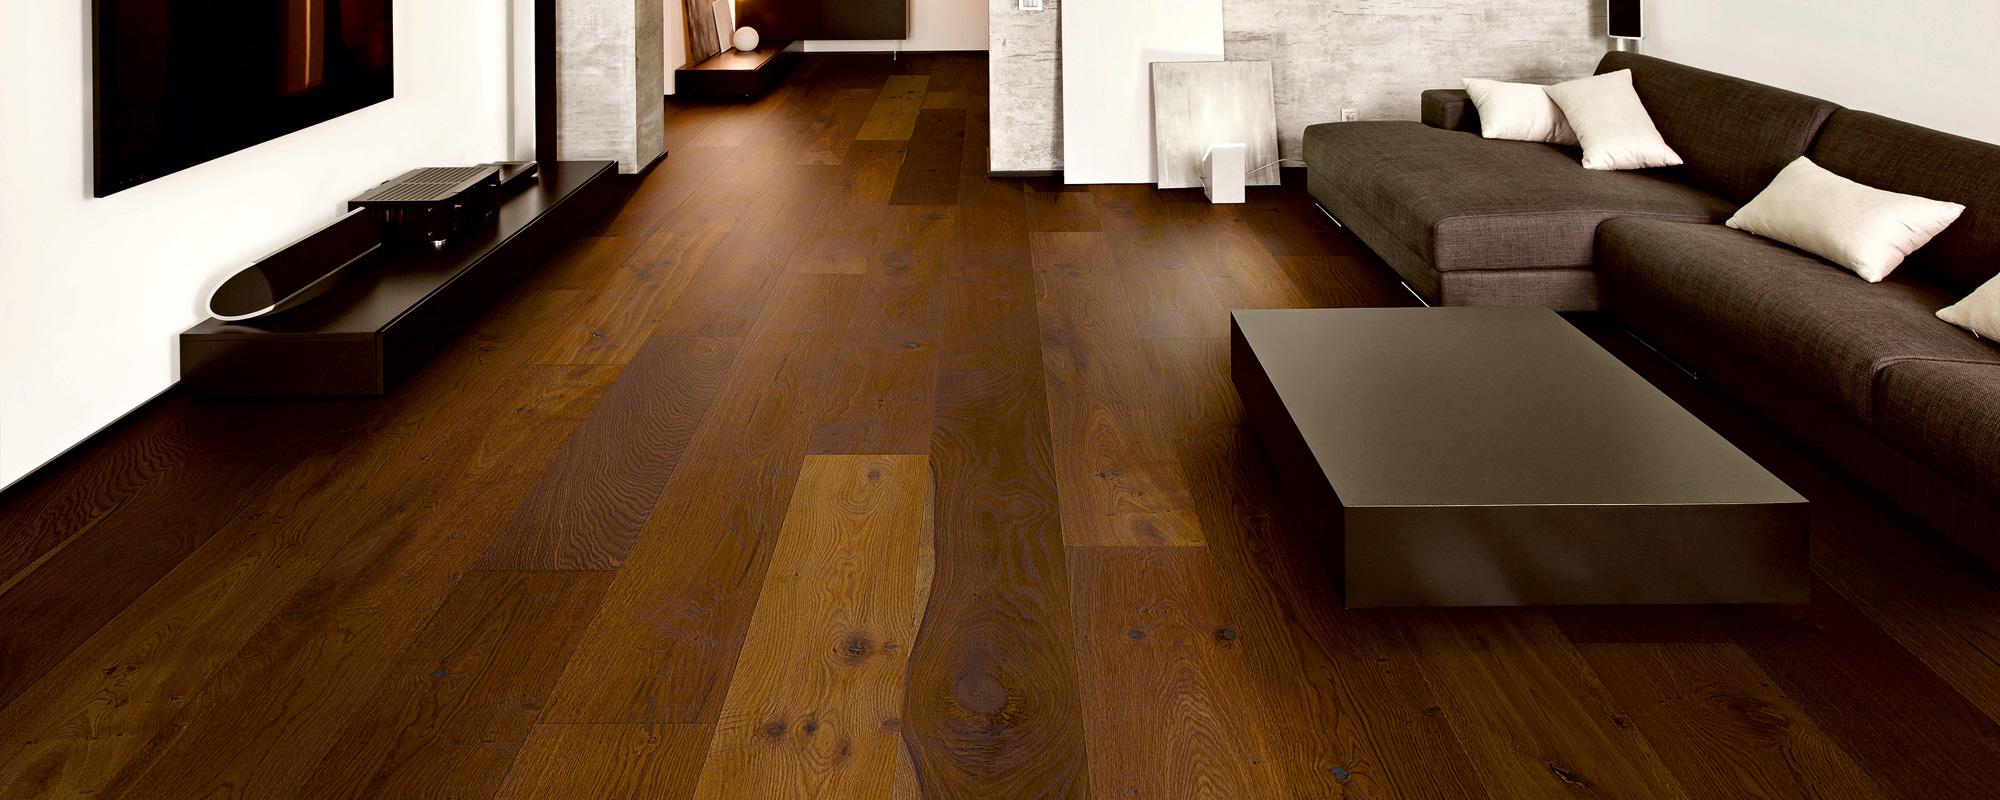 Grand Serie Eiche Grand geräuchert Country Style Flooring Parkett Dielen Köln